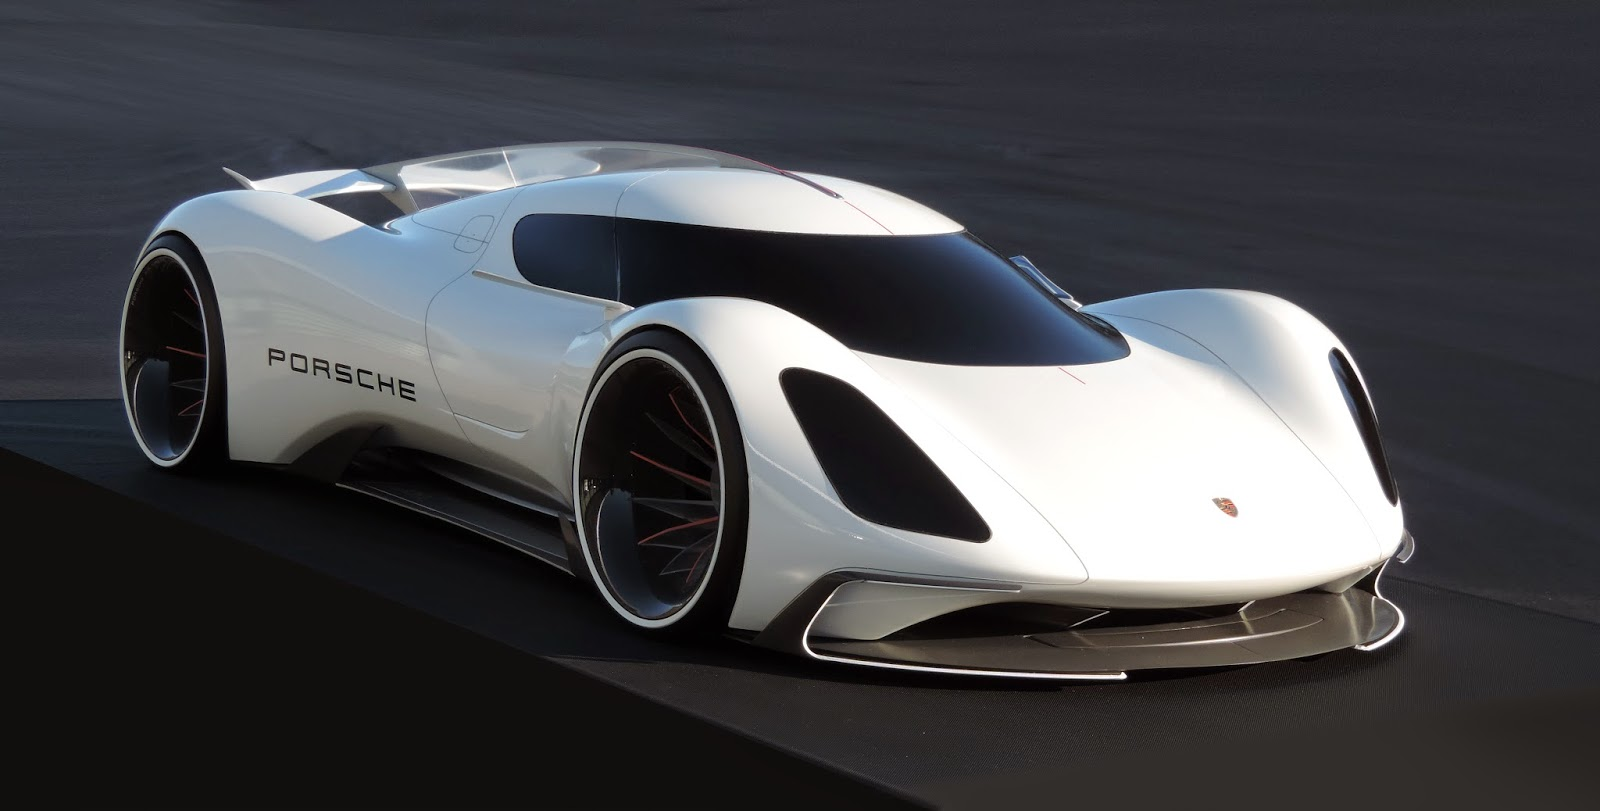 porsche electric le mans 2035 prototype looks believable and makes perfect sense autoevolution. Black Bedroom Furniture Sets. Home Design Ideas